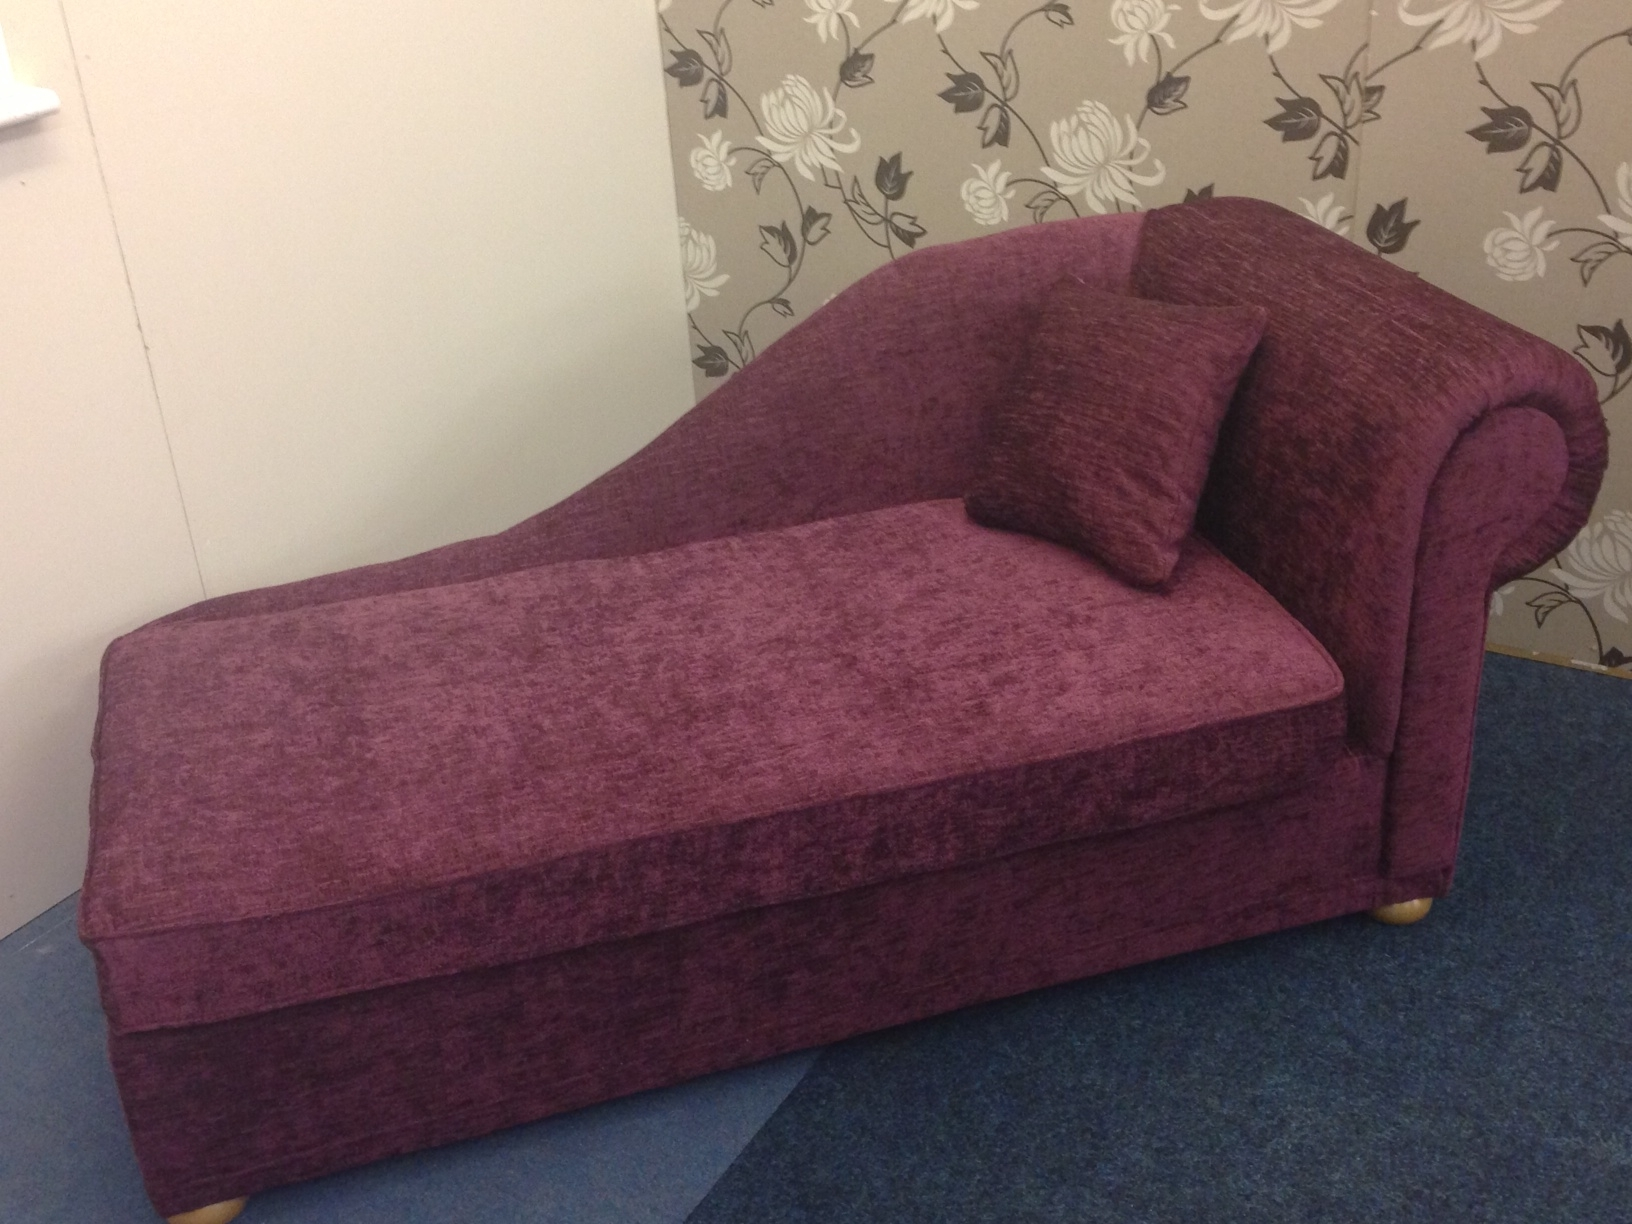 Catosfera Regarding Chaise Lounge Sofa Beds (View 3 of 15)